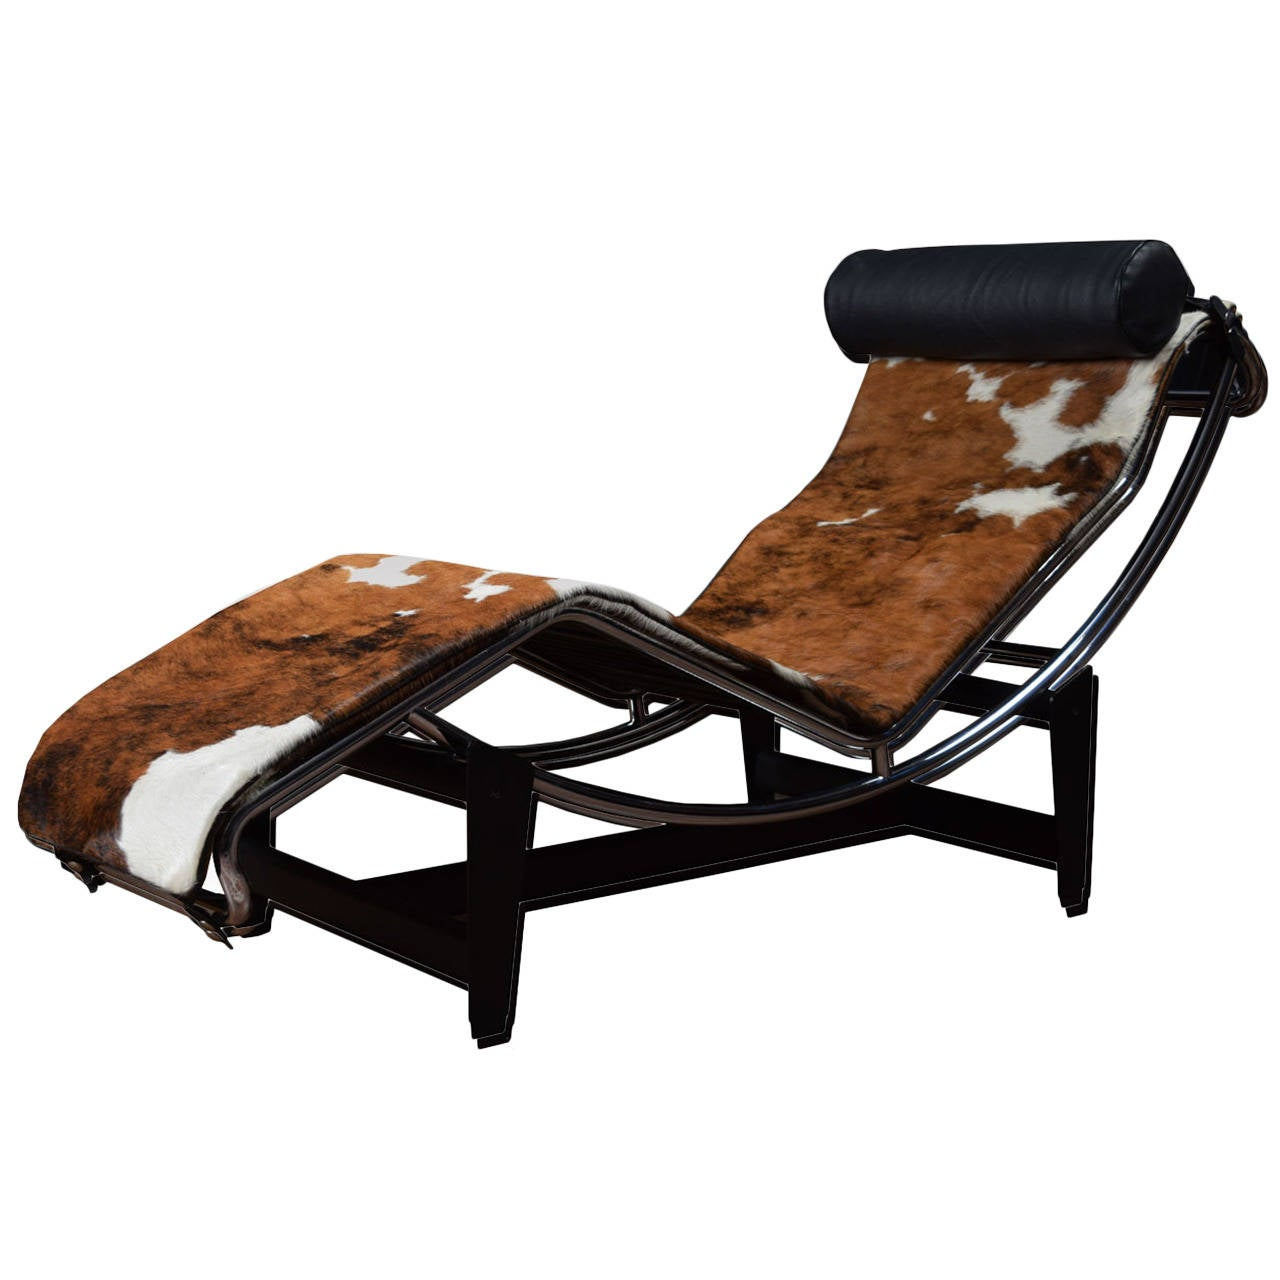 Le corbusier lc4 lounge chair in cowhide at 1stdibs